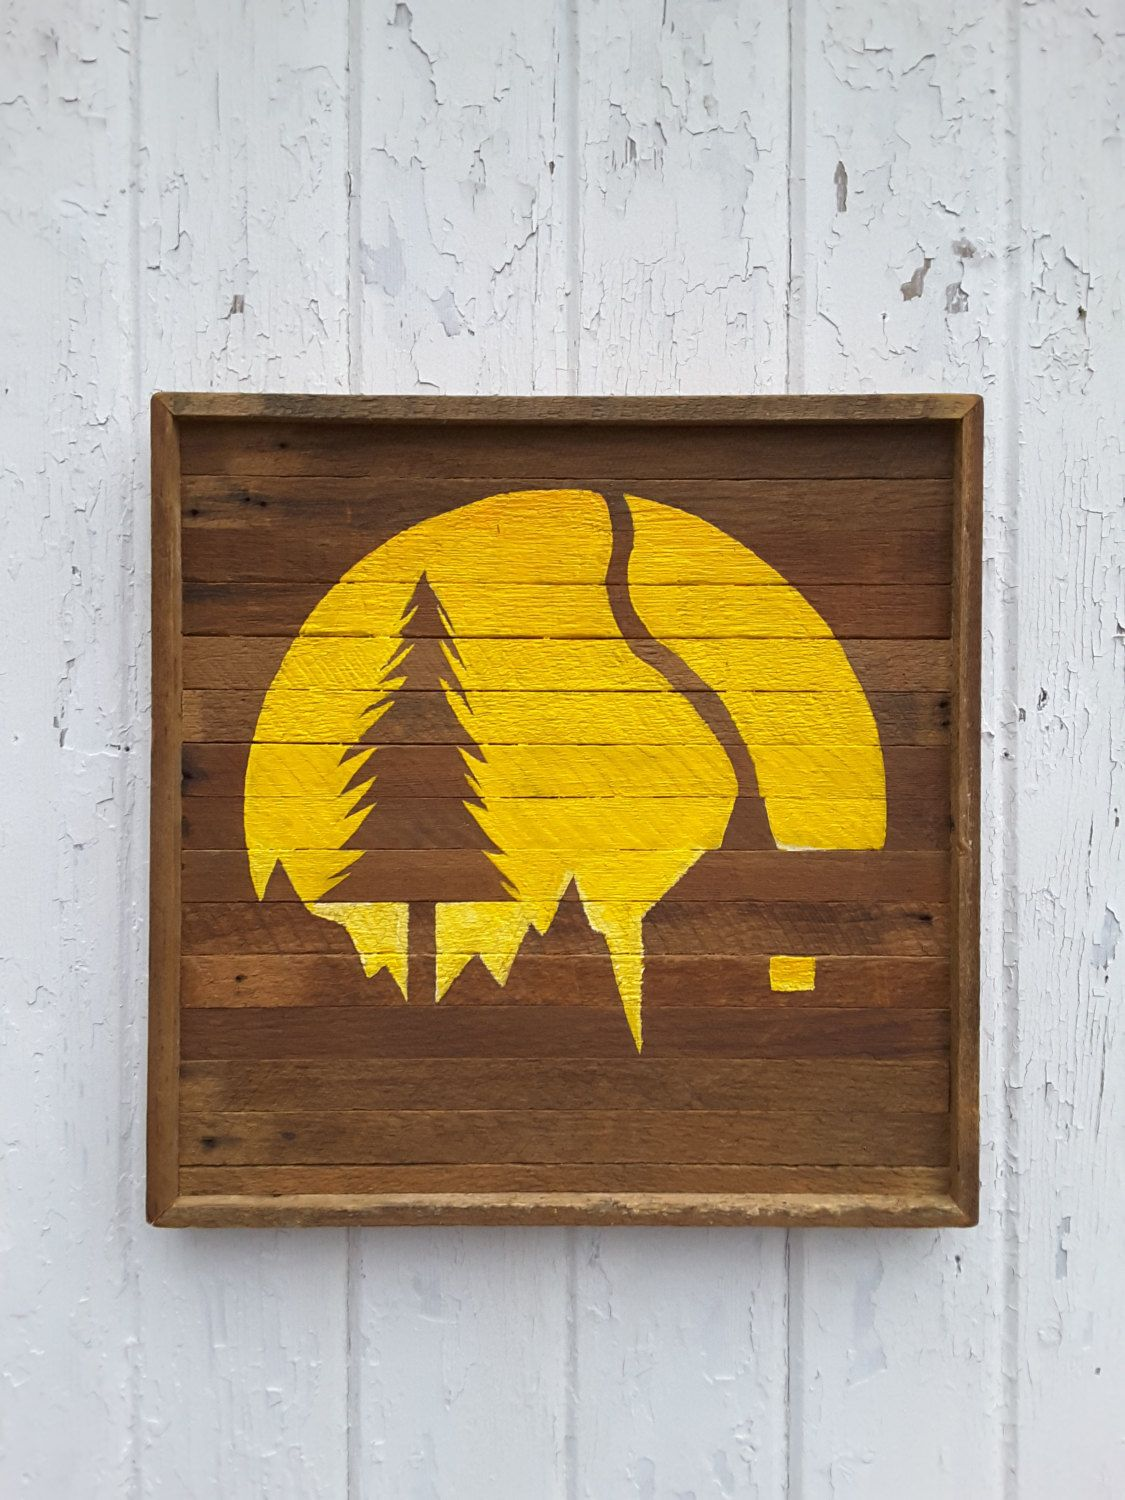 Barn Wood Art Ideas Reclaimed Wood Wall Art Landscape Silouette Mountain